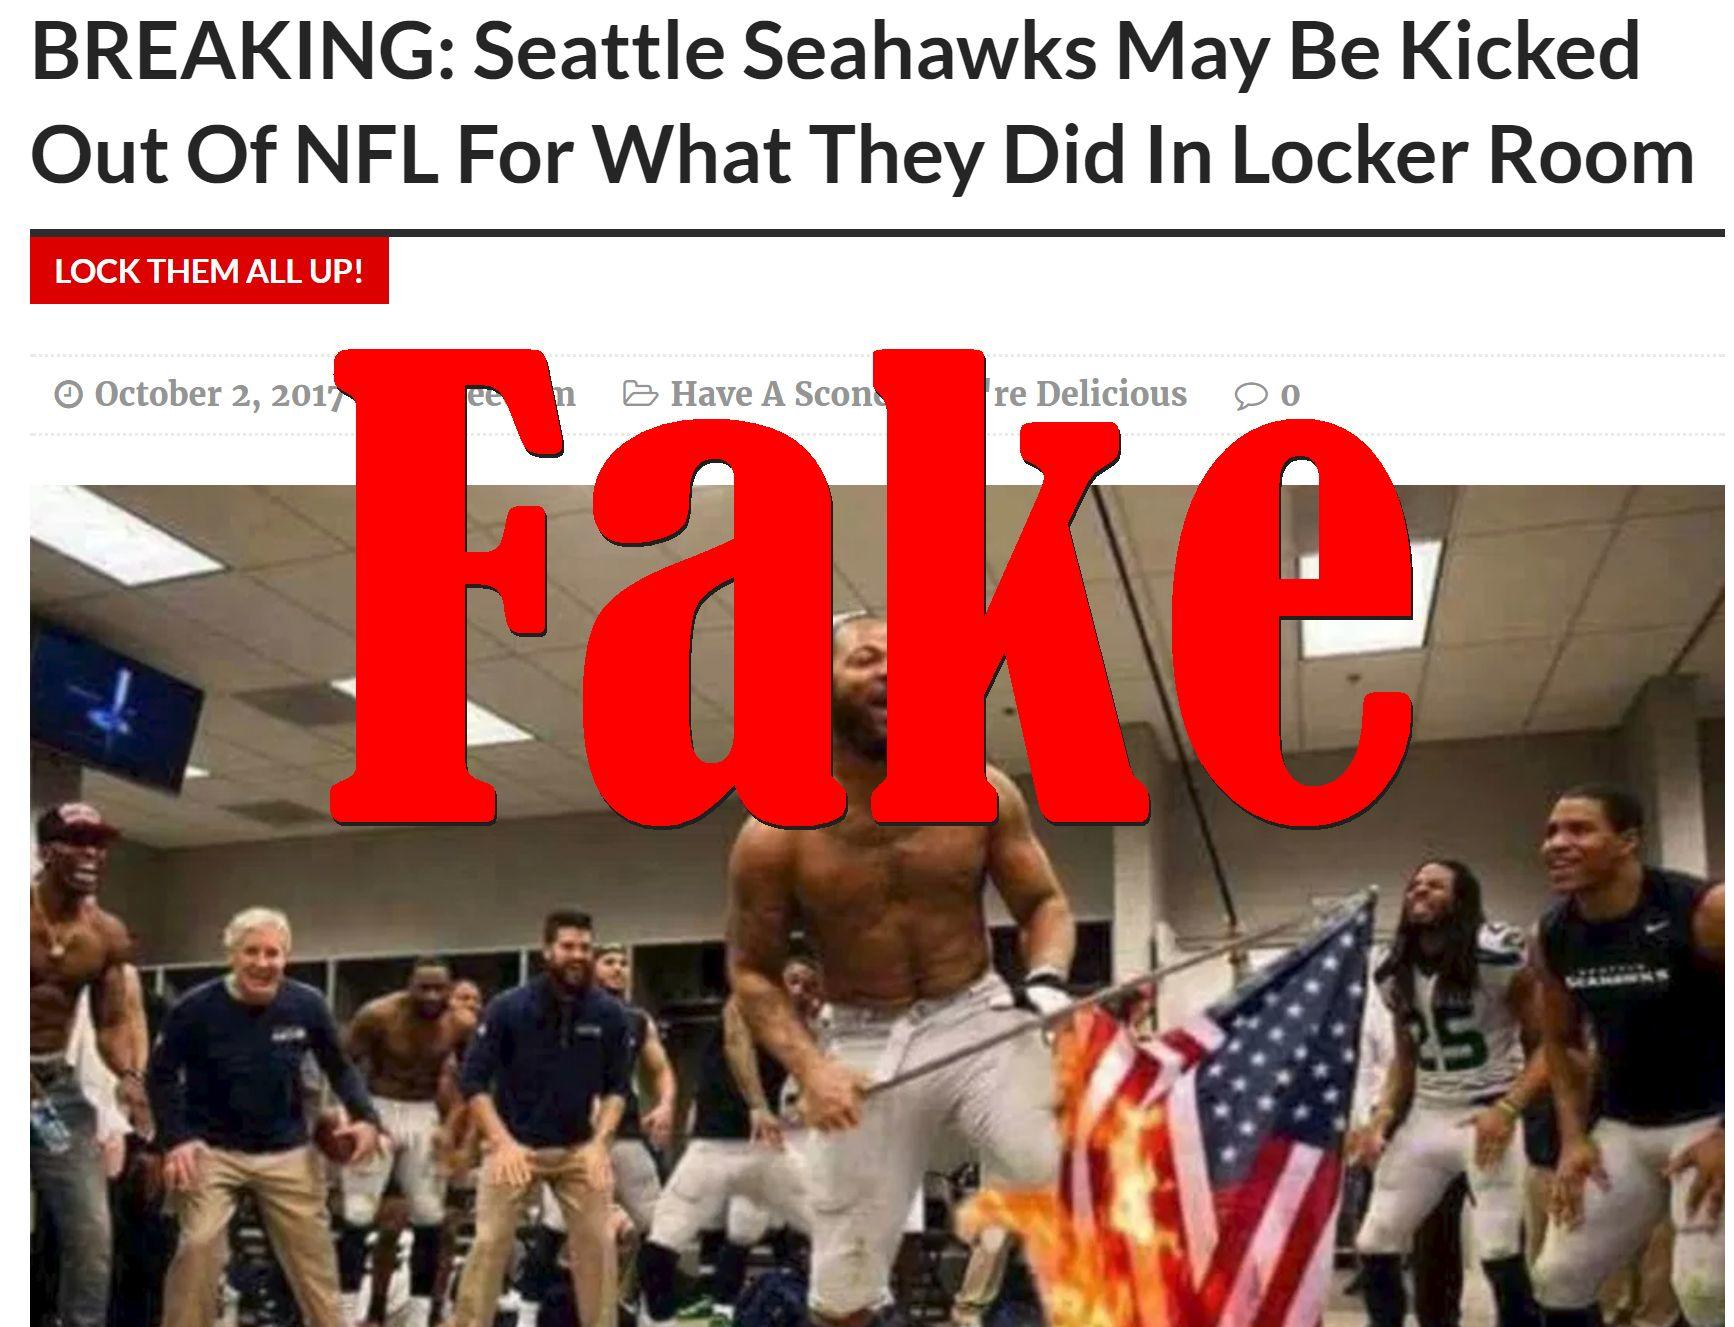 Fake News: Seattle Seahawks Will NOT Be Kicked Out Of NFL For What They Did In Locker Room